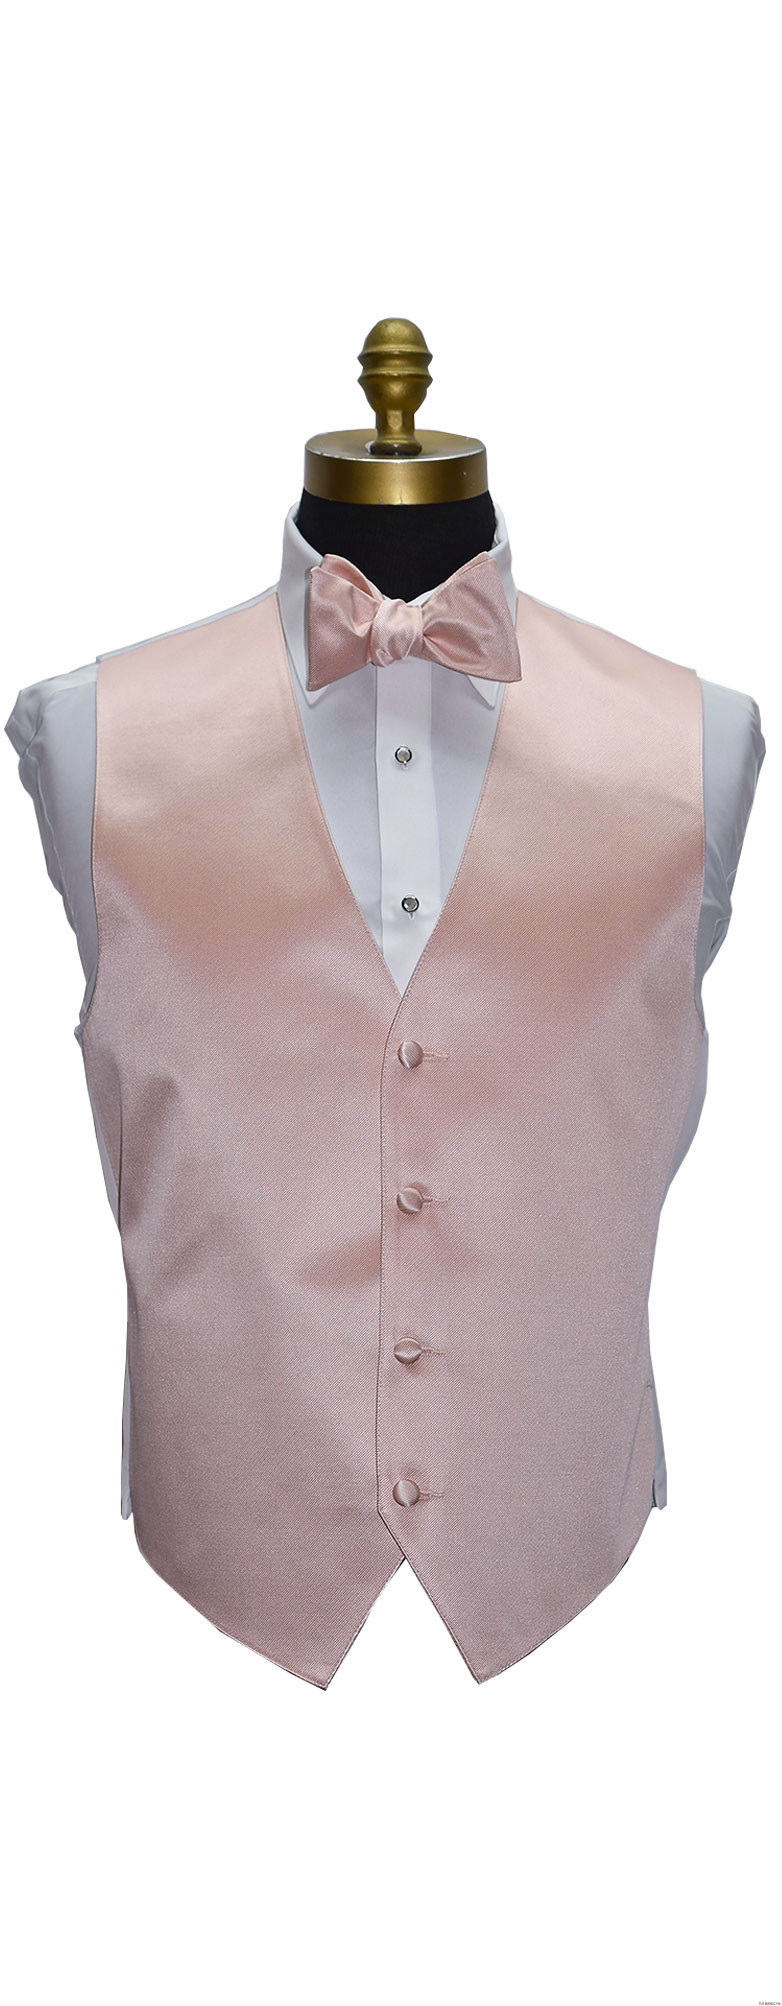 men's and boy's blush tuxedo vest with blush tie-yourself bowtie by San Miguel Formals